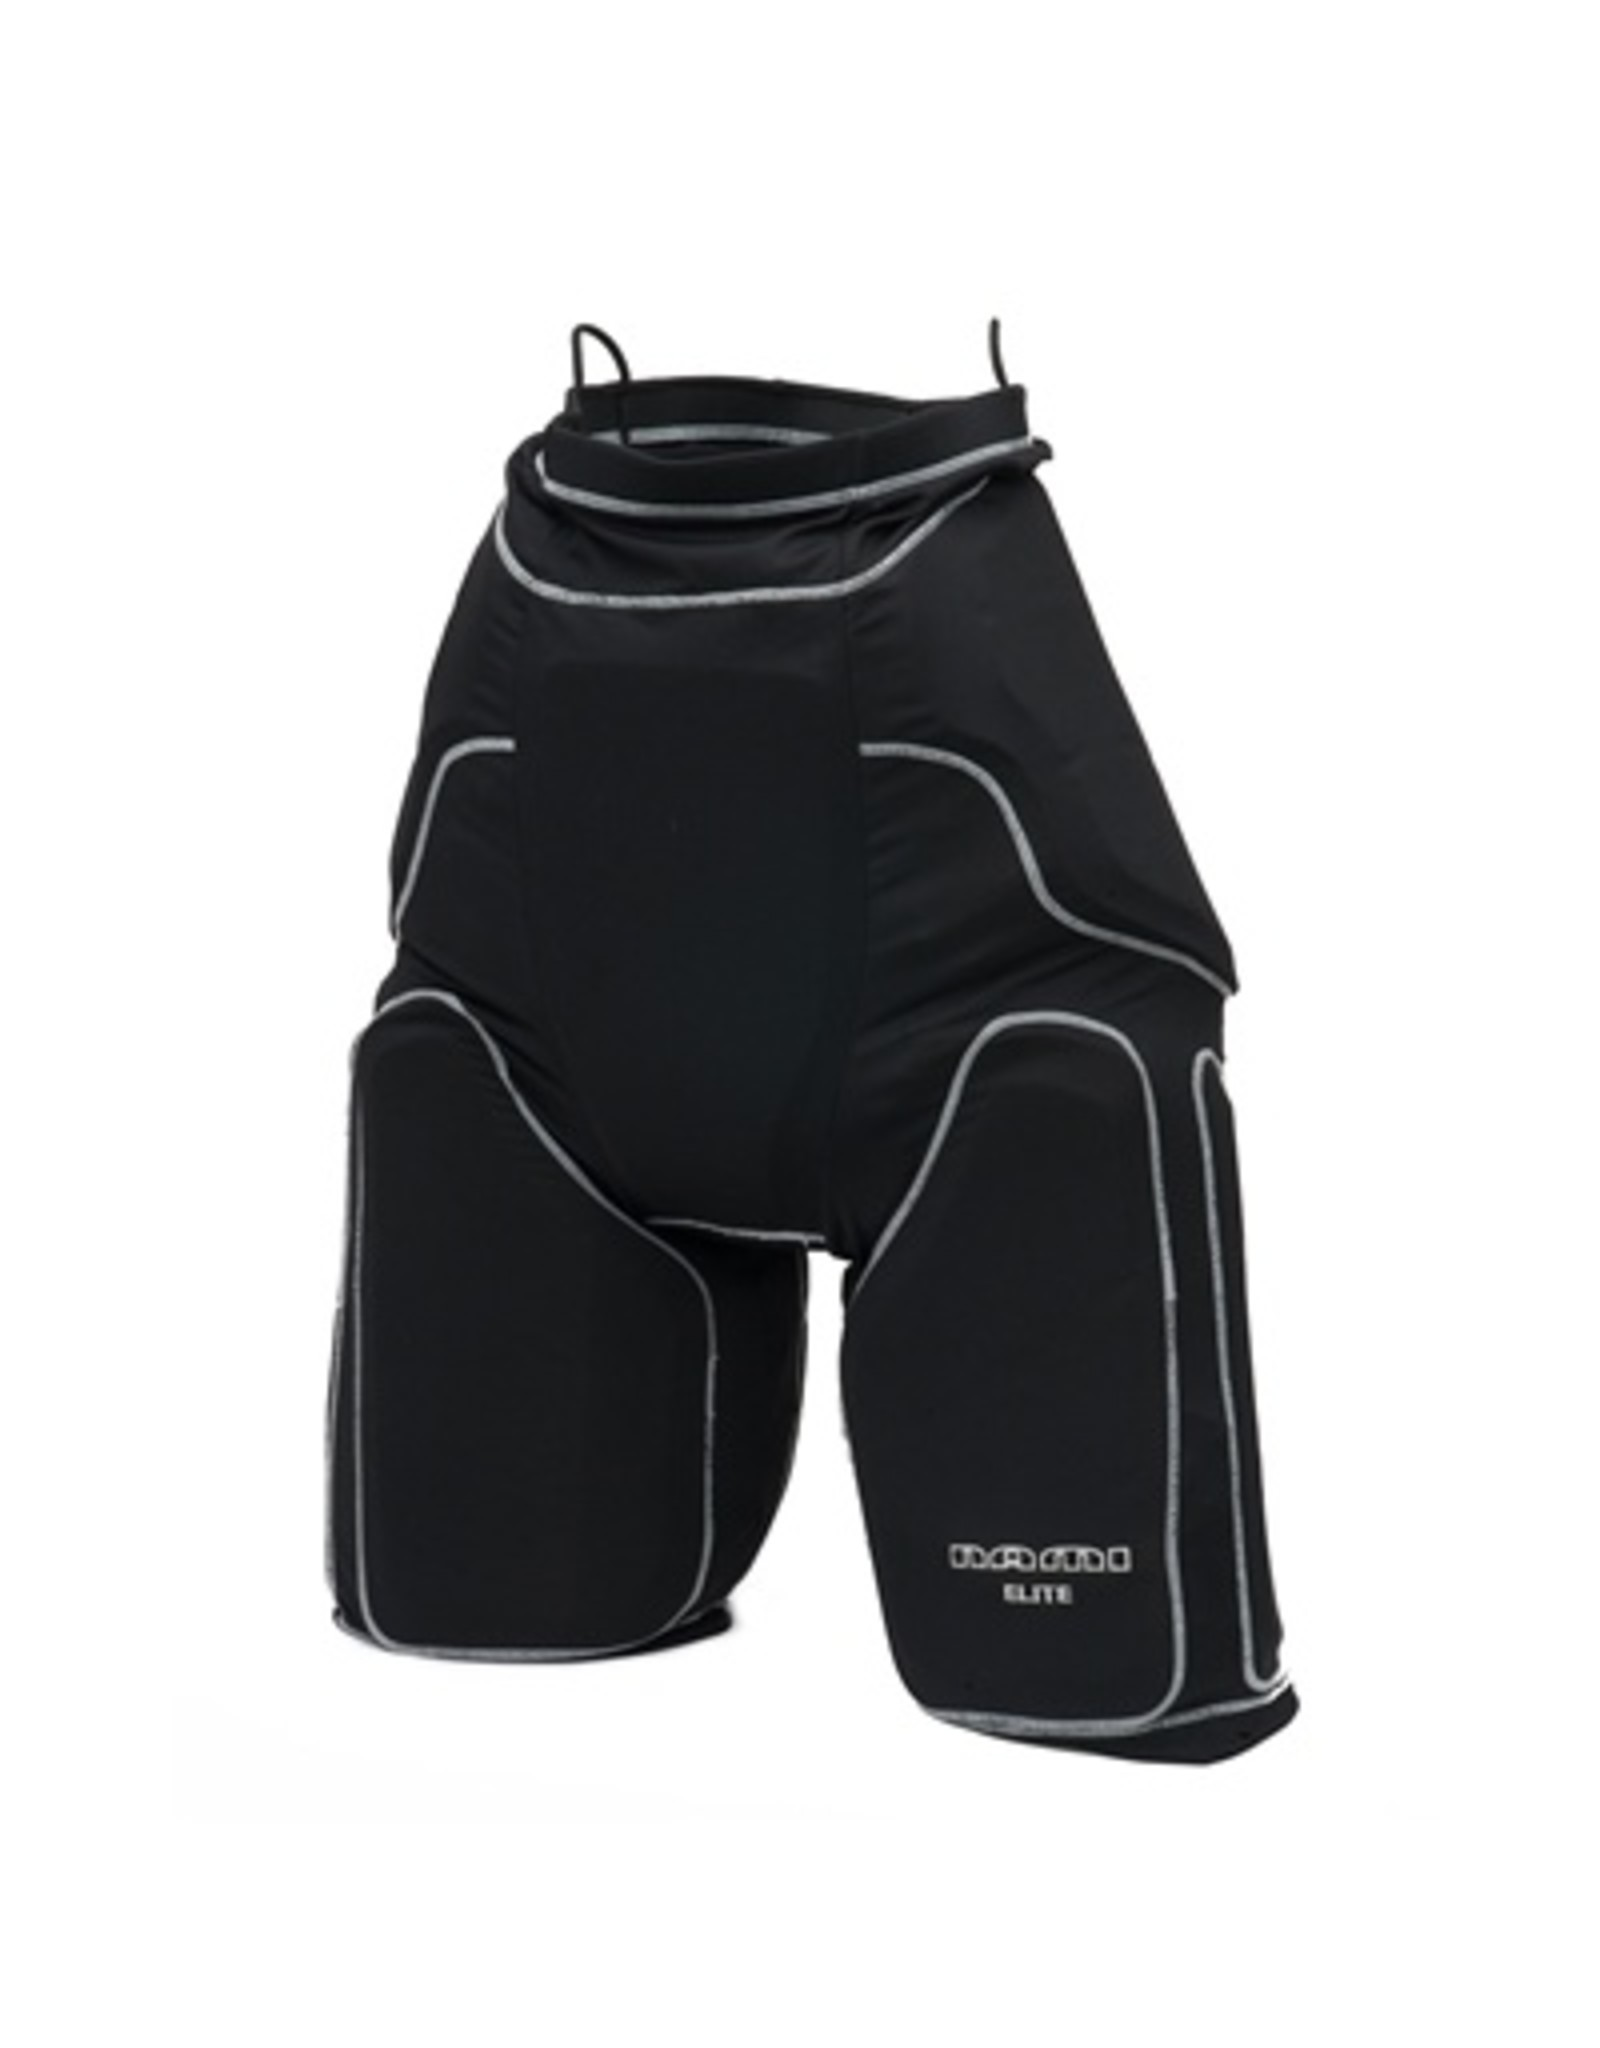 NAMI NAMI ADULT ELITE PERFORMANCE RINGETTE GIRDLE